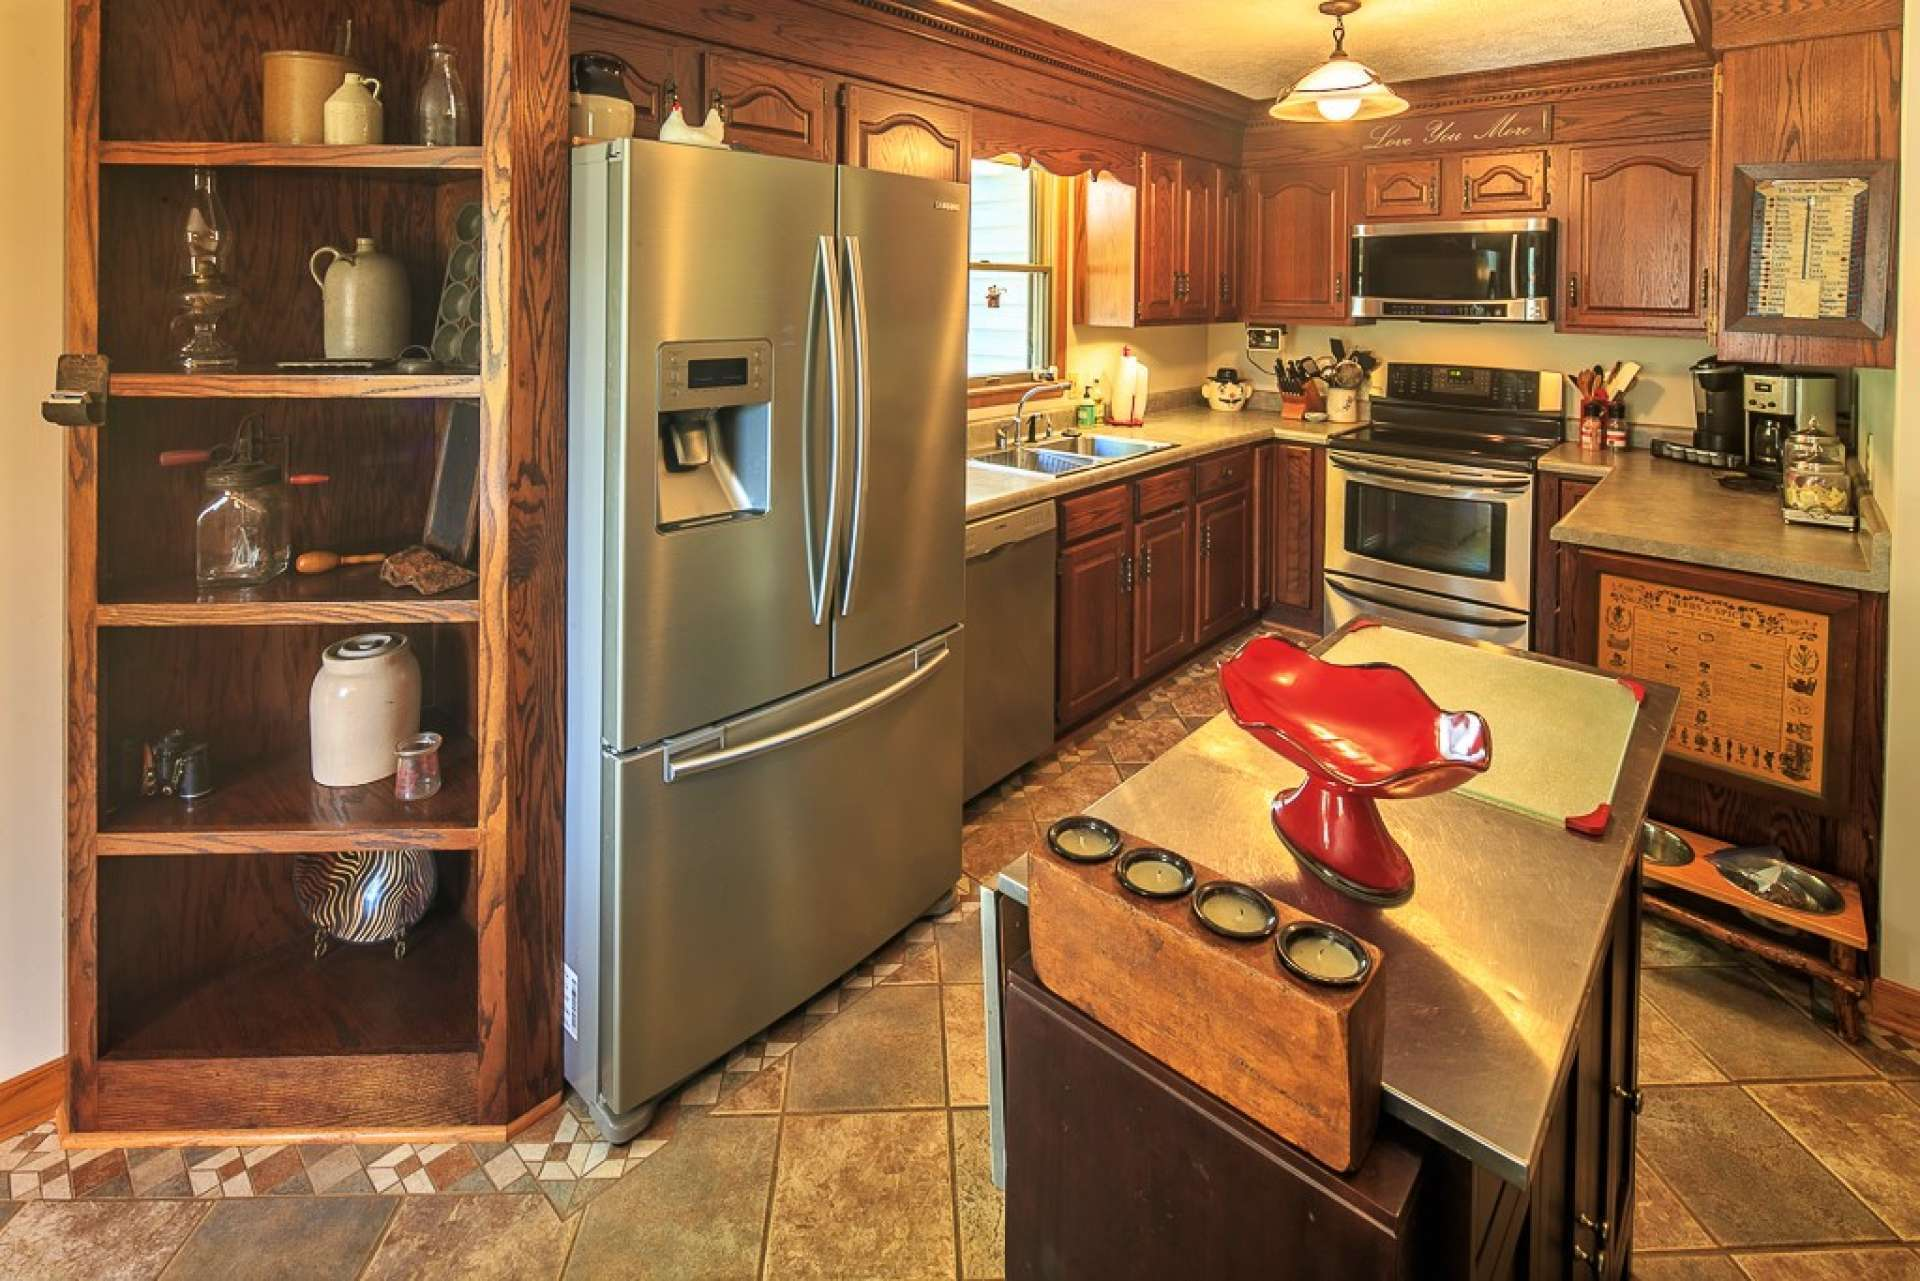 An efficient kitchen features stainless steel appliances, oak cabinetry, wood floors, and plenty of work and storage space.